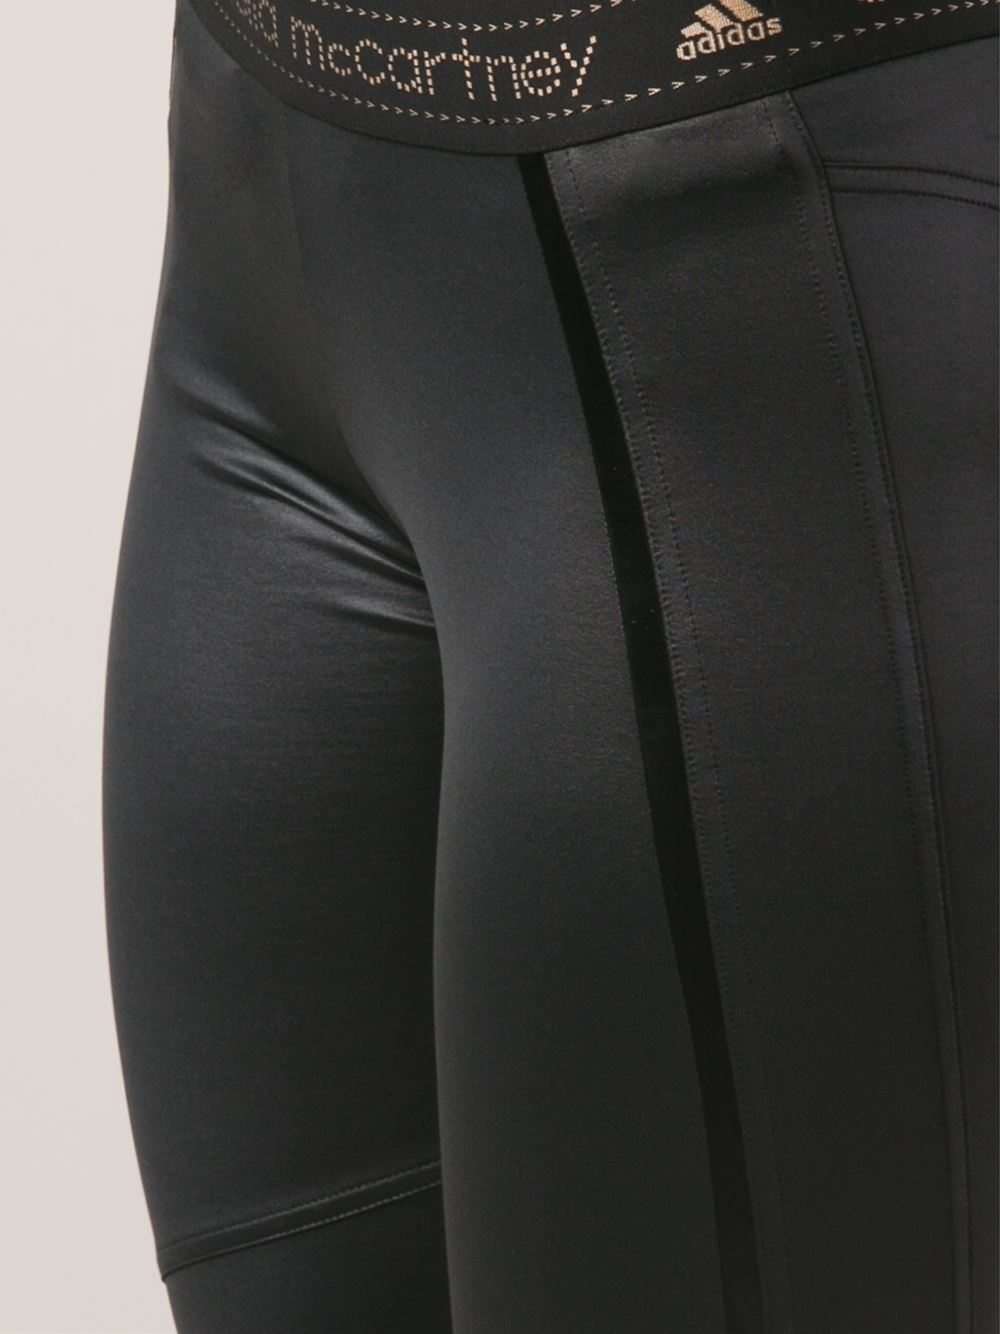 Adidas By Stella Mccartney Run Performance Tight Leggings